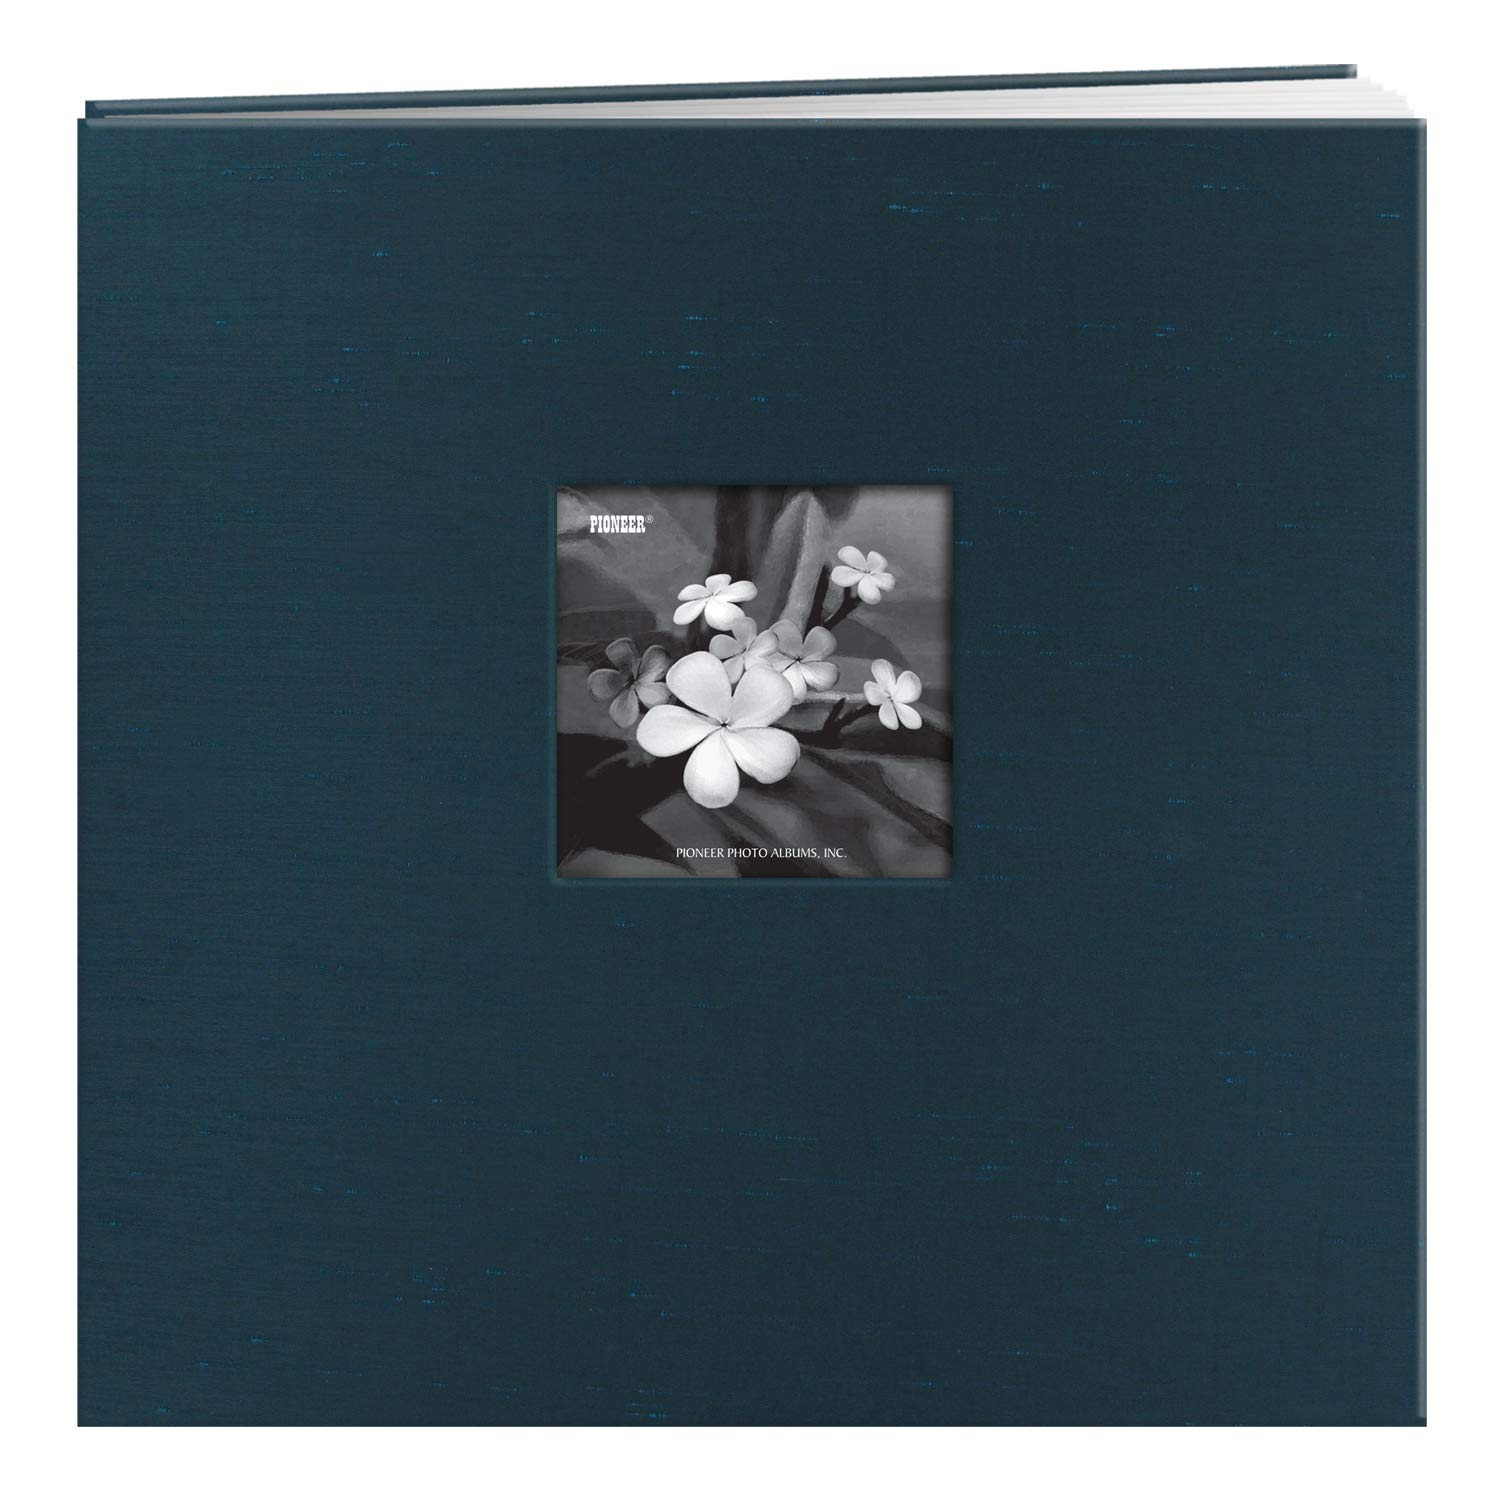 Pioneer Photo Albums Postbound Silk Fabric Frame Cover Memory Book, Lagoon Blue MB-88SKFLAGOON